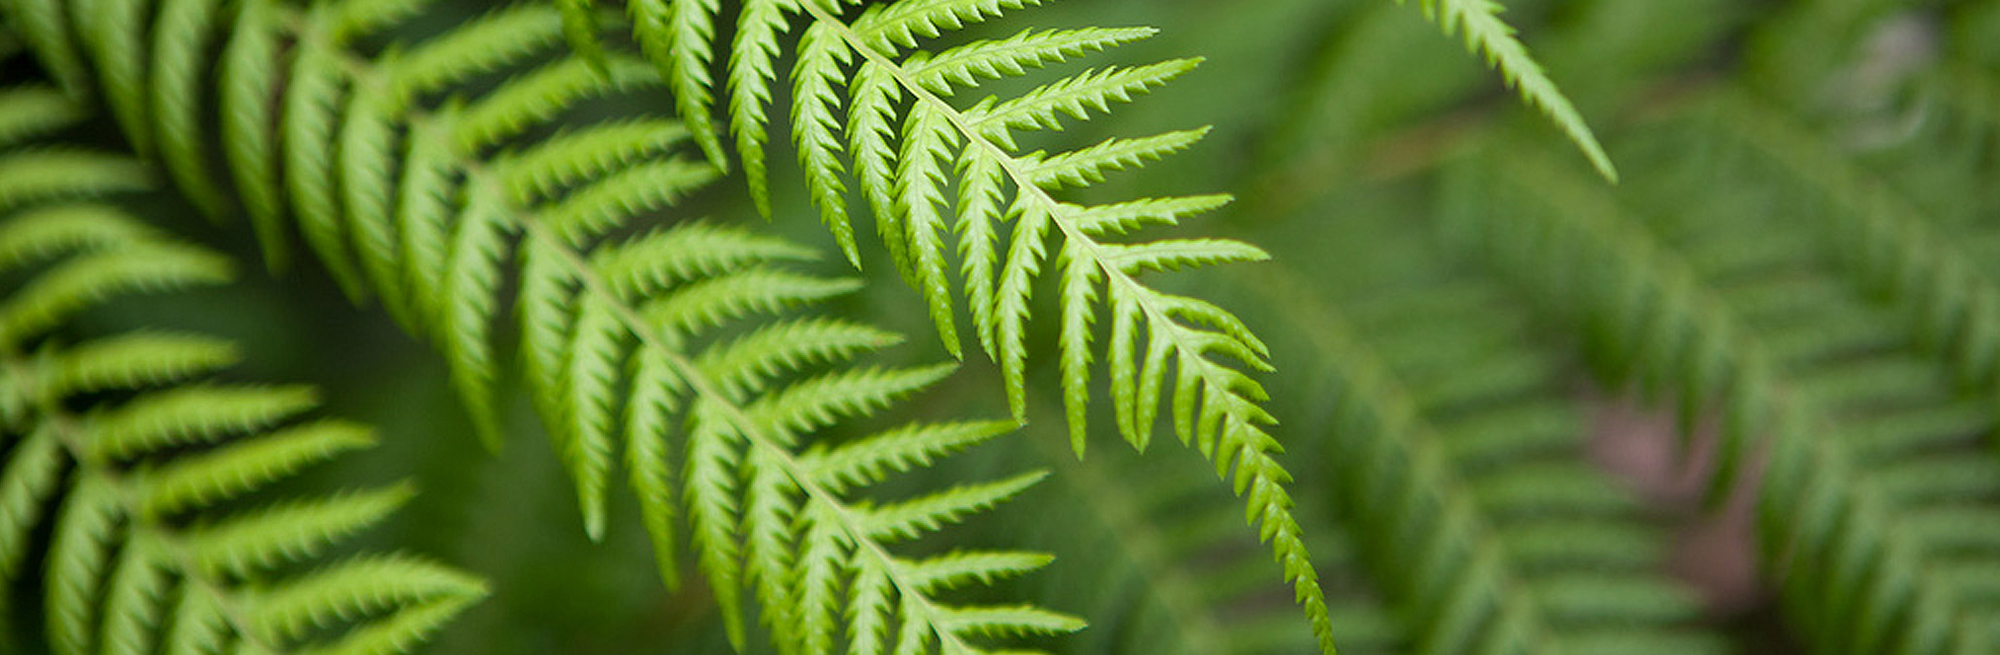 Hobart-Orofacial-Pain-and-Special-Needs-Clinic-Fern-Leaf-Slider2